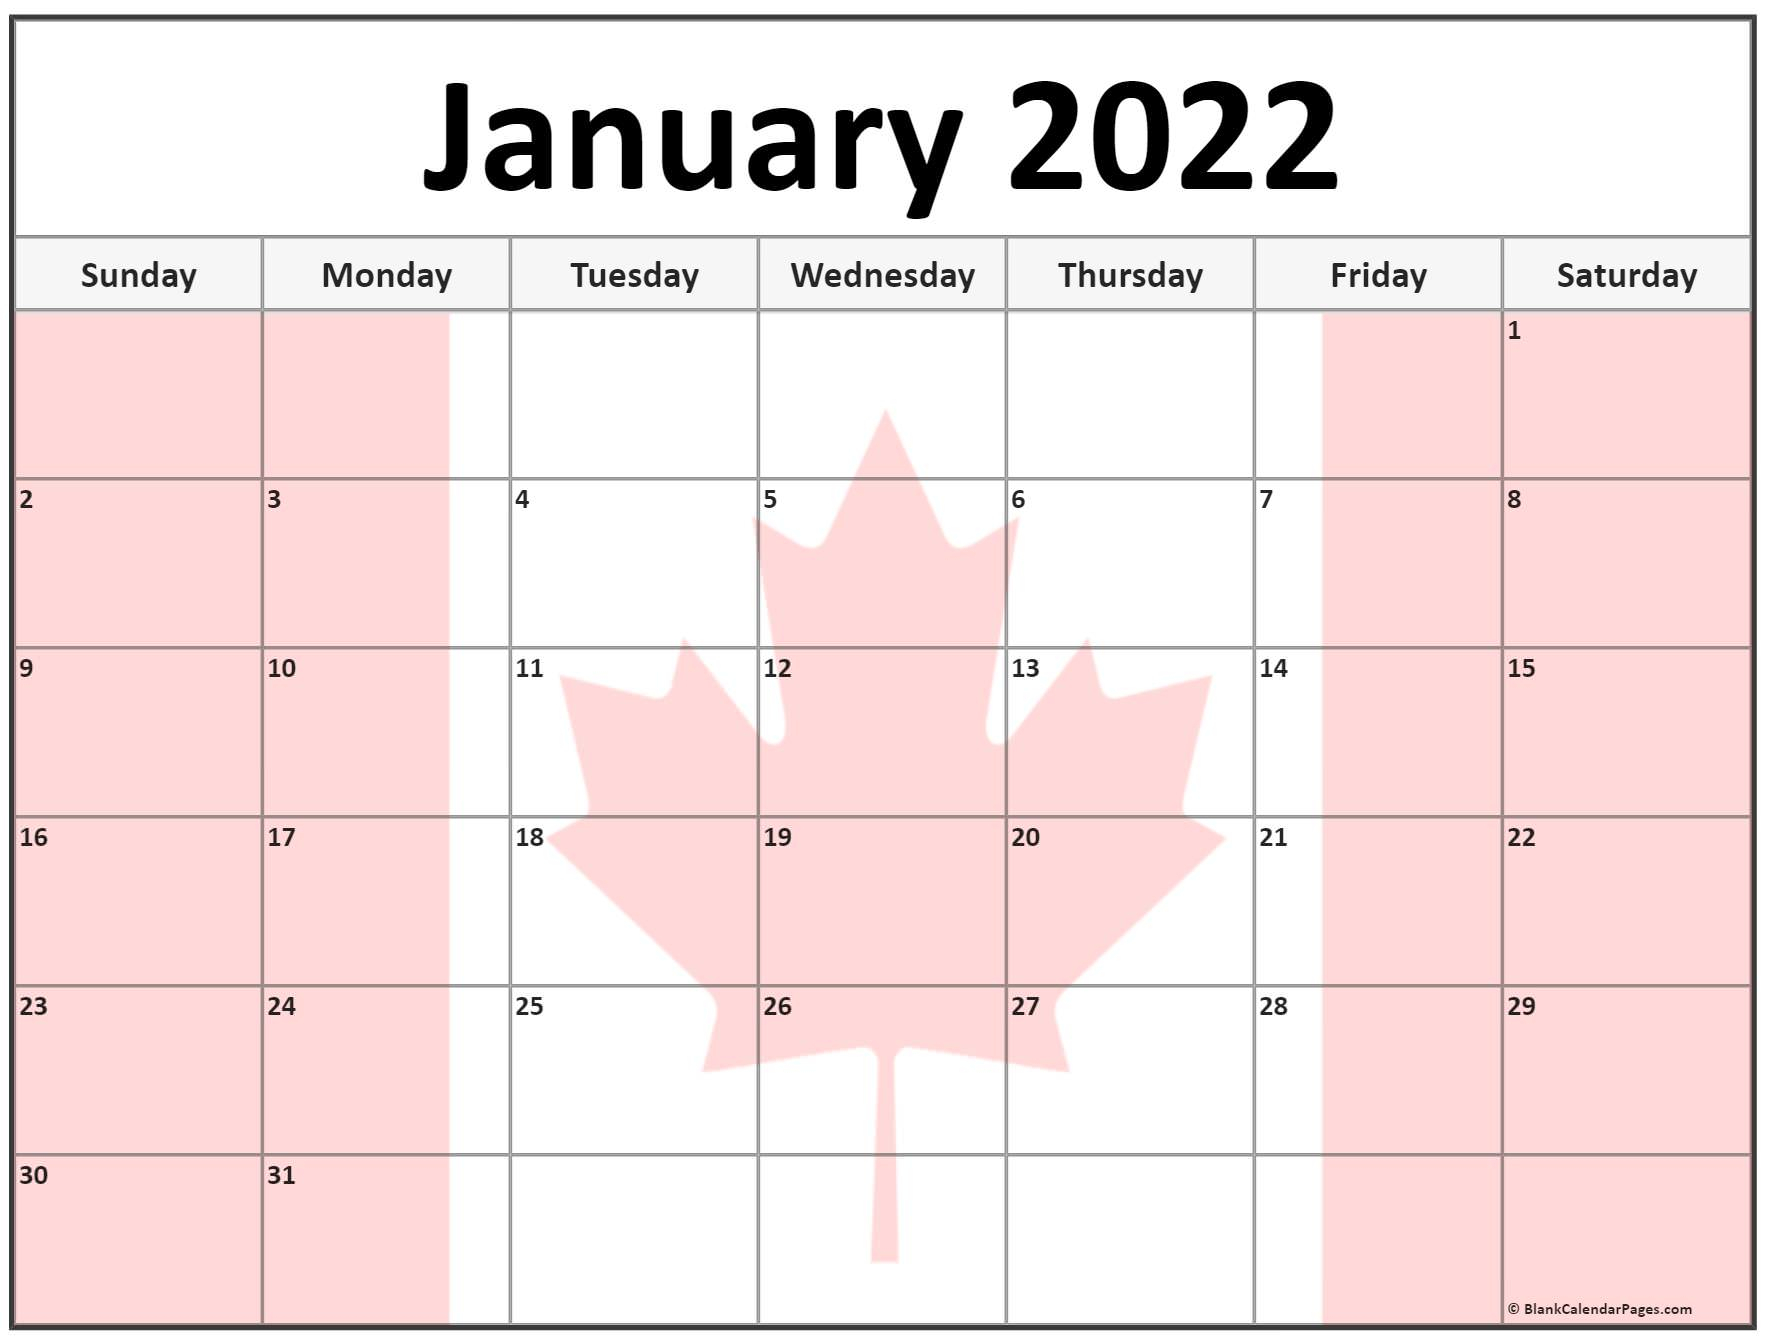 Collection Of January 2022 Photo Calendars With Image Filters. Within Printable January 2022 Calendar